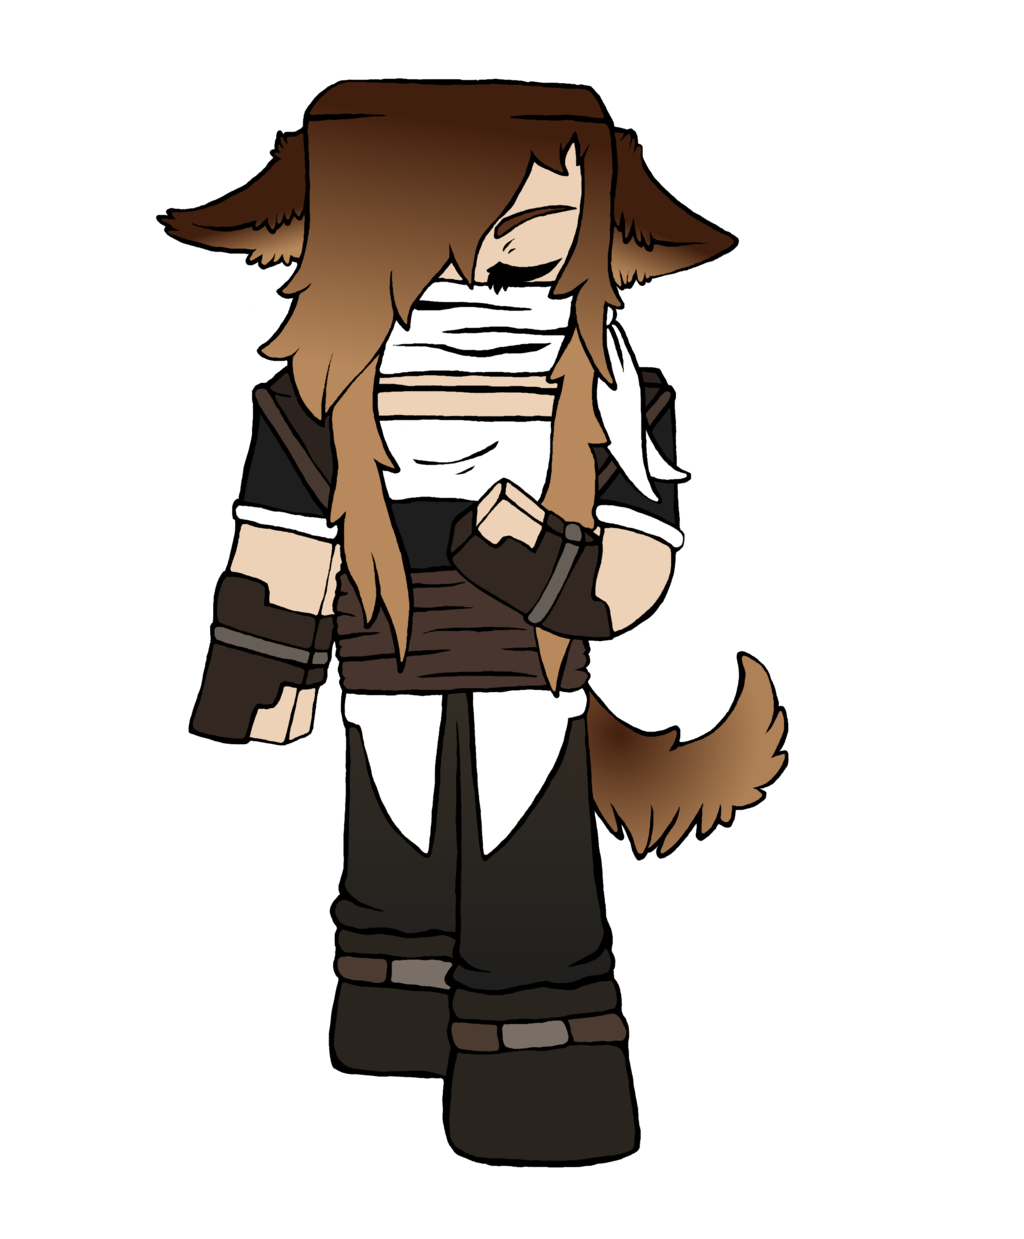 Wolf Girl Minecraft Skin By Mooeymadnessreal On Deviantart